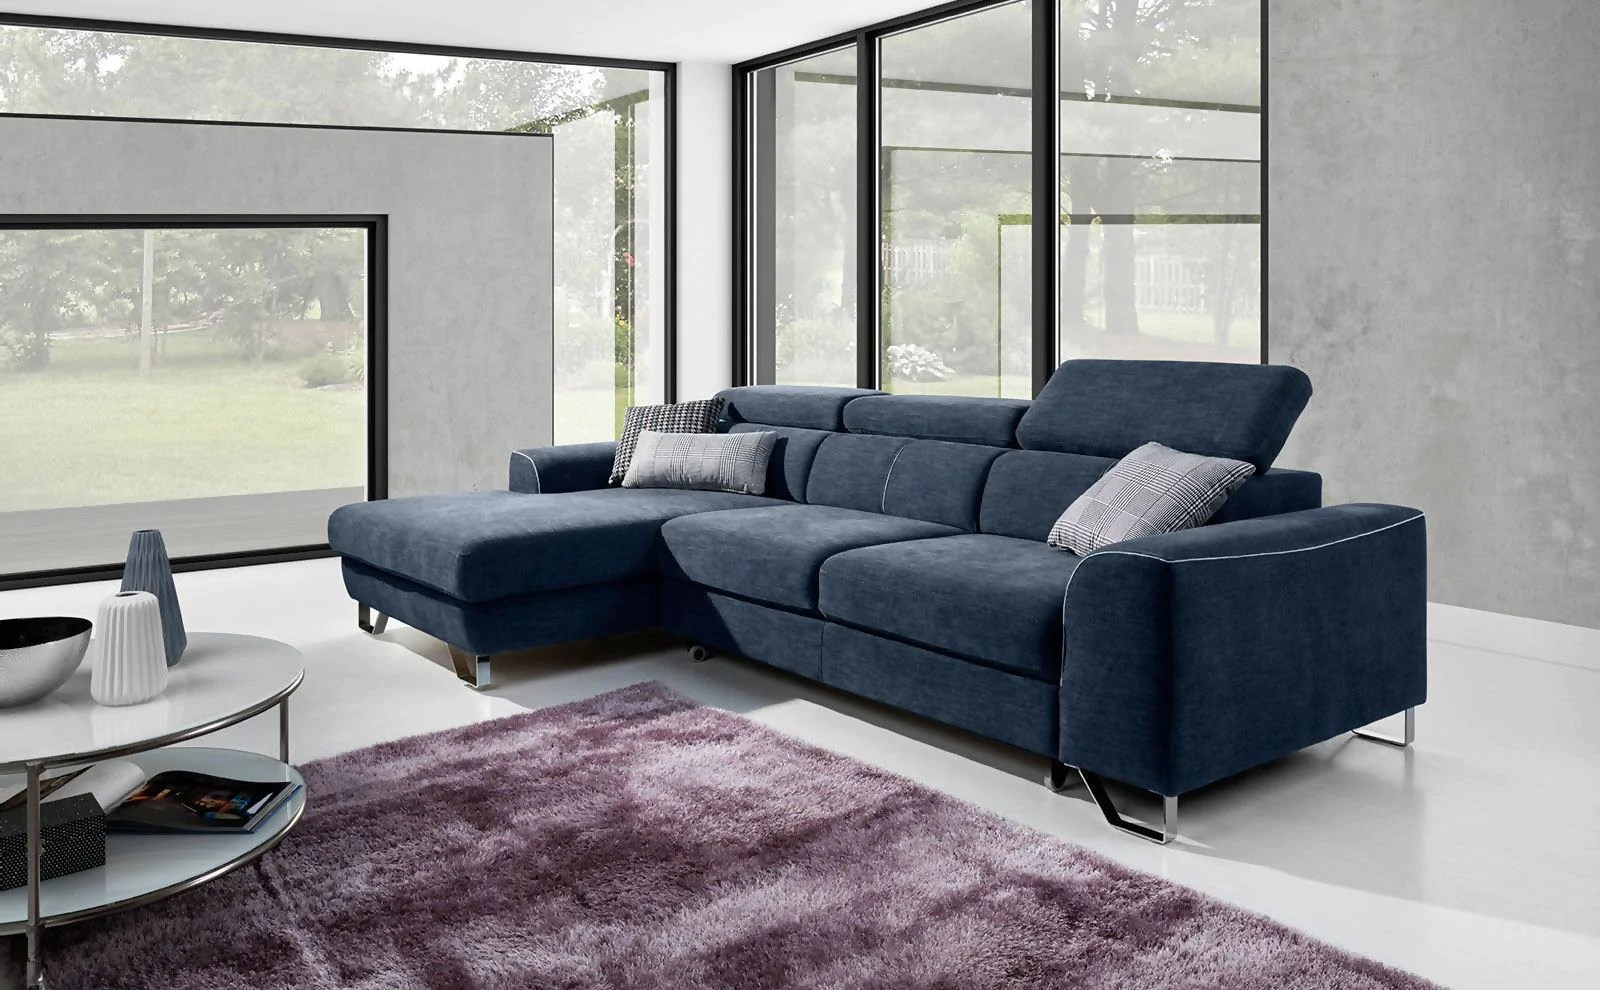 Meubles Nordi But The Best Quality Modern Furniture 6 Months Free Credit Apply